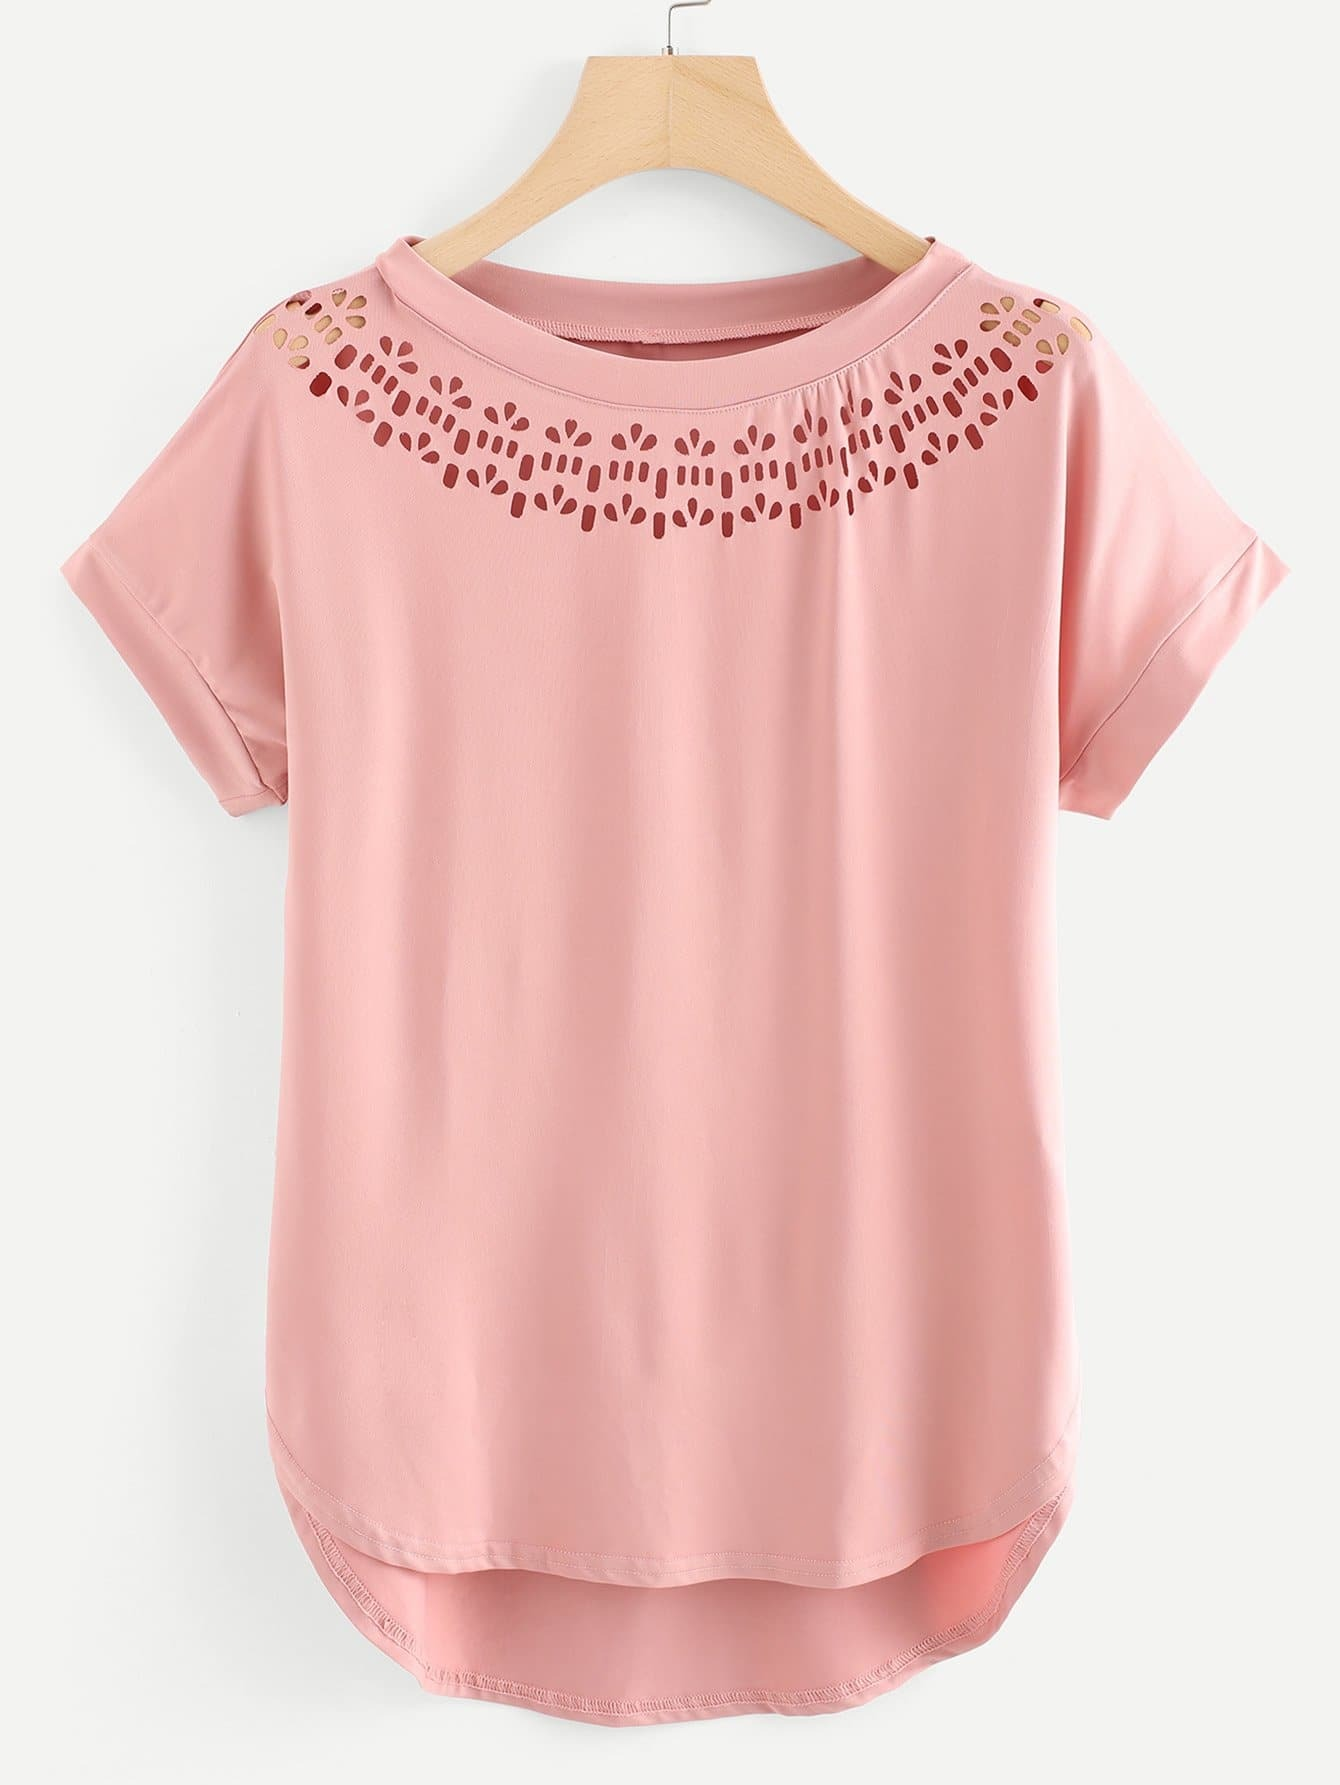 Laser Cut High Low Curved Hem T-shirt striped high low curved hem top